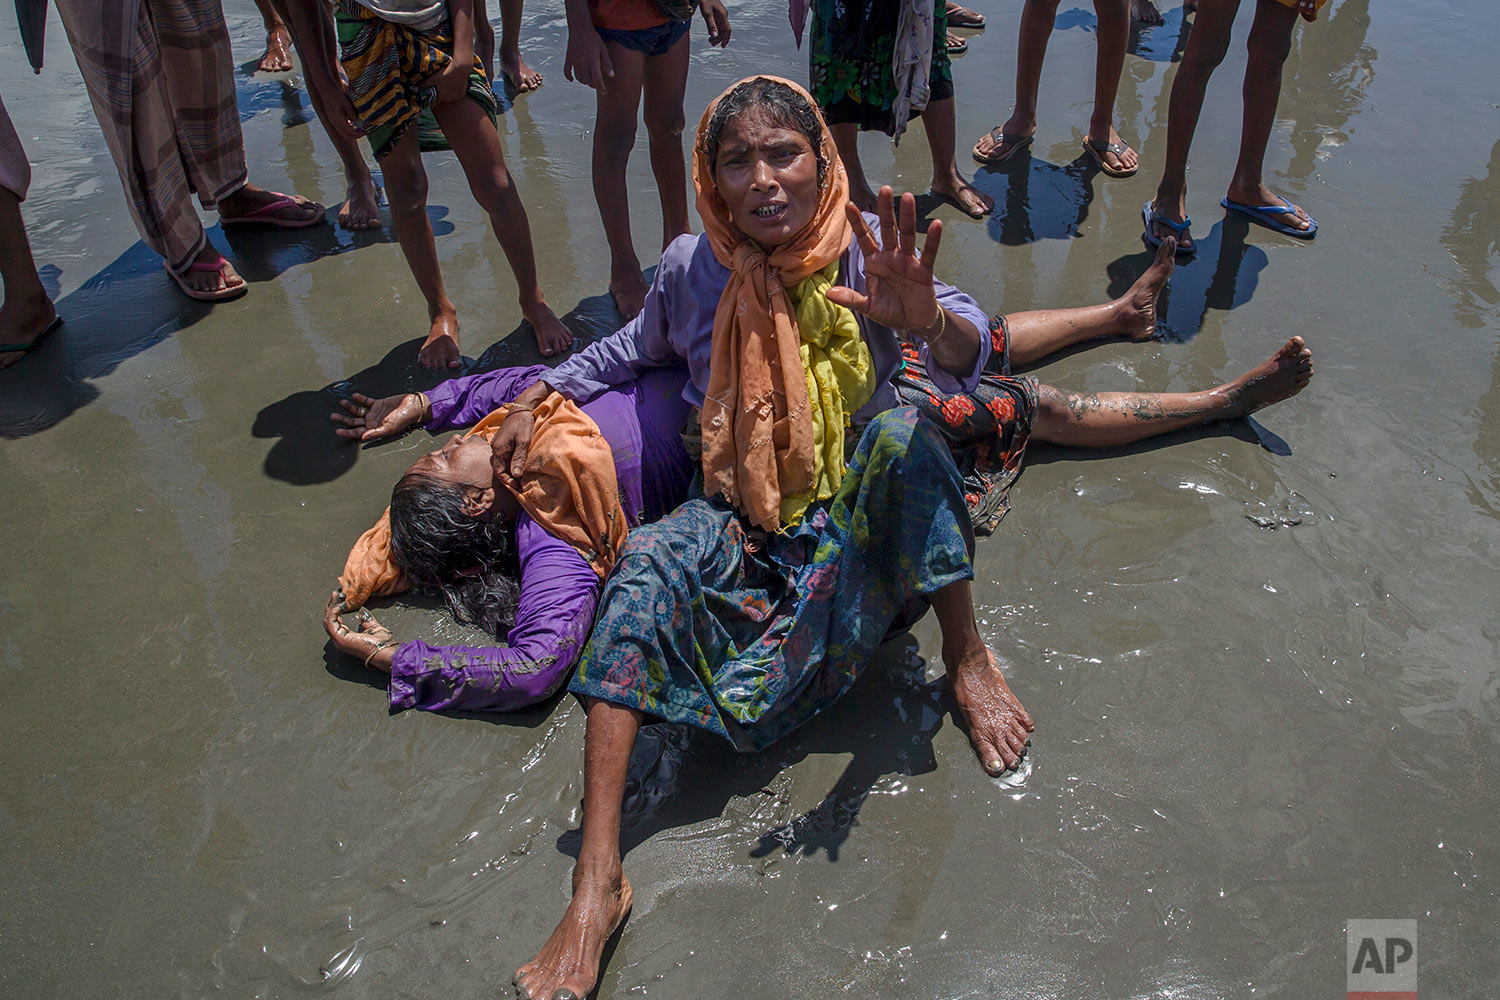 A Rohingya Muslim woman, who crossed over from Myanmar into Bangladesh, shouts for help as a relative lies unconscious after the boat they were traveling in capsized minutes before reaching shore at Shah Porir Dwip, Bangladesh, Thursday, Sept. 14, 2017.  (AP Photo/Dar Yasin)